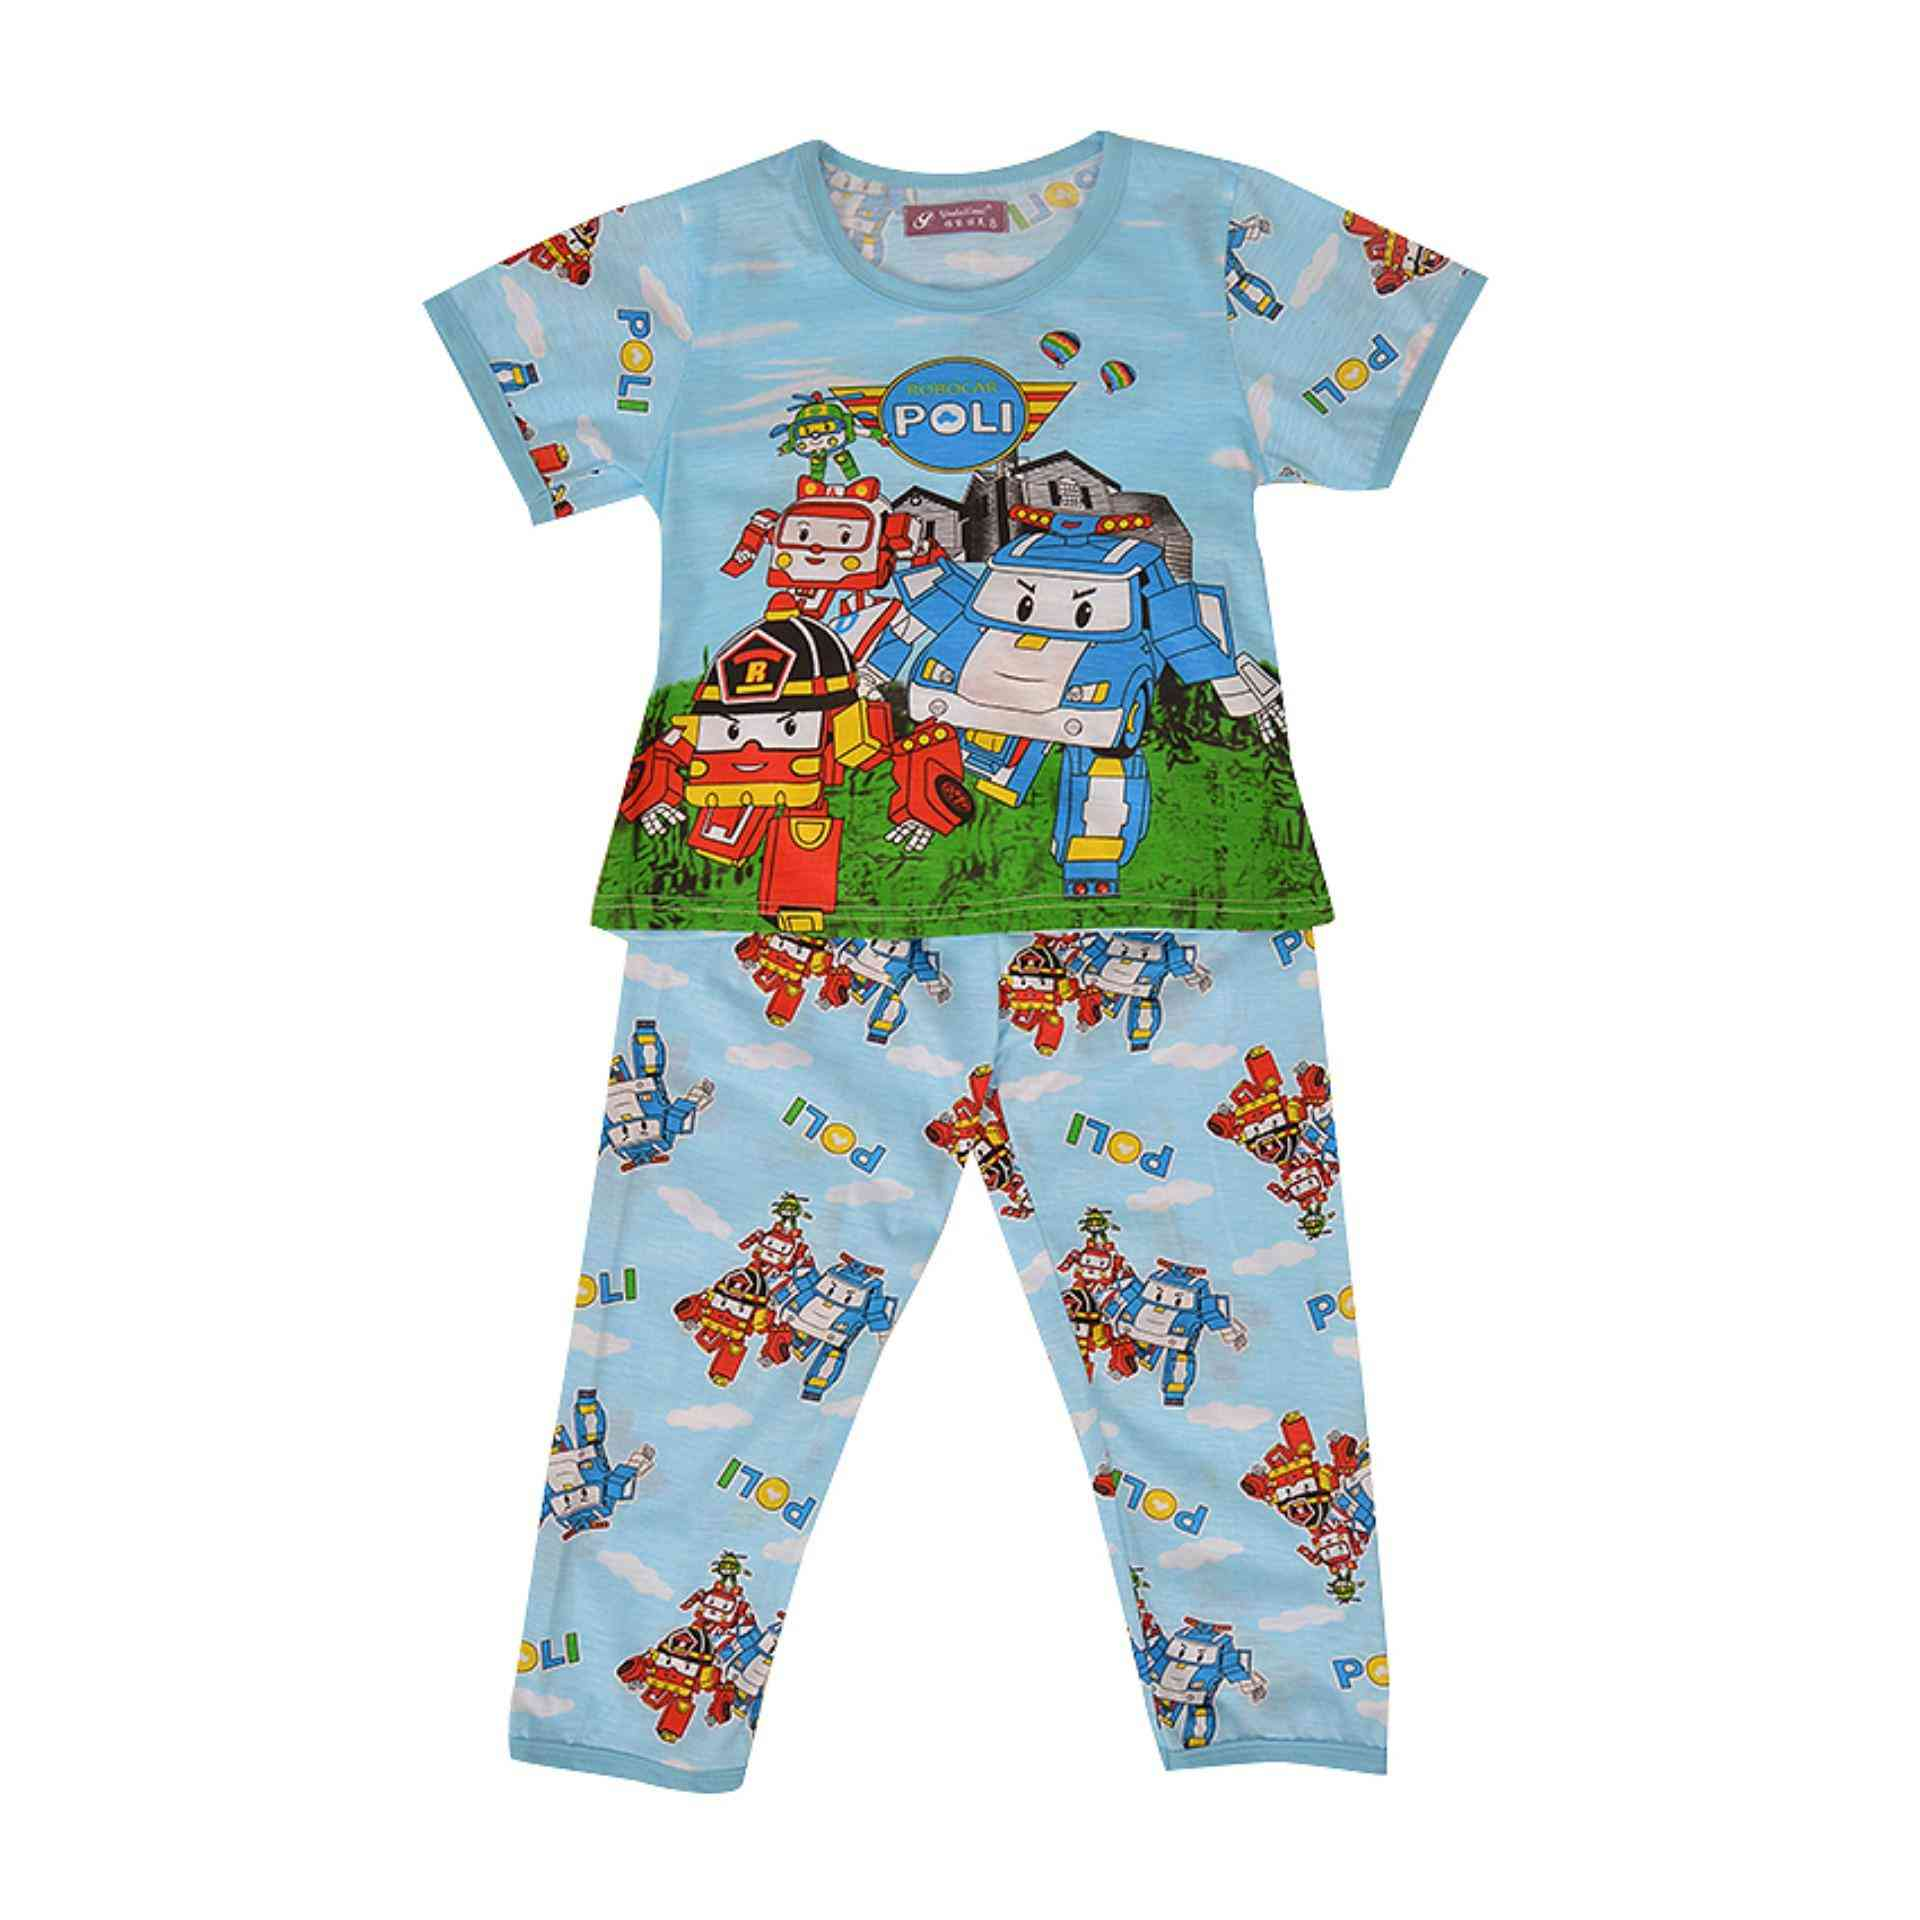 Pack of 2 Pure Cotton Night Suit (Pajama + Tshirt) for Boys - Cars